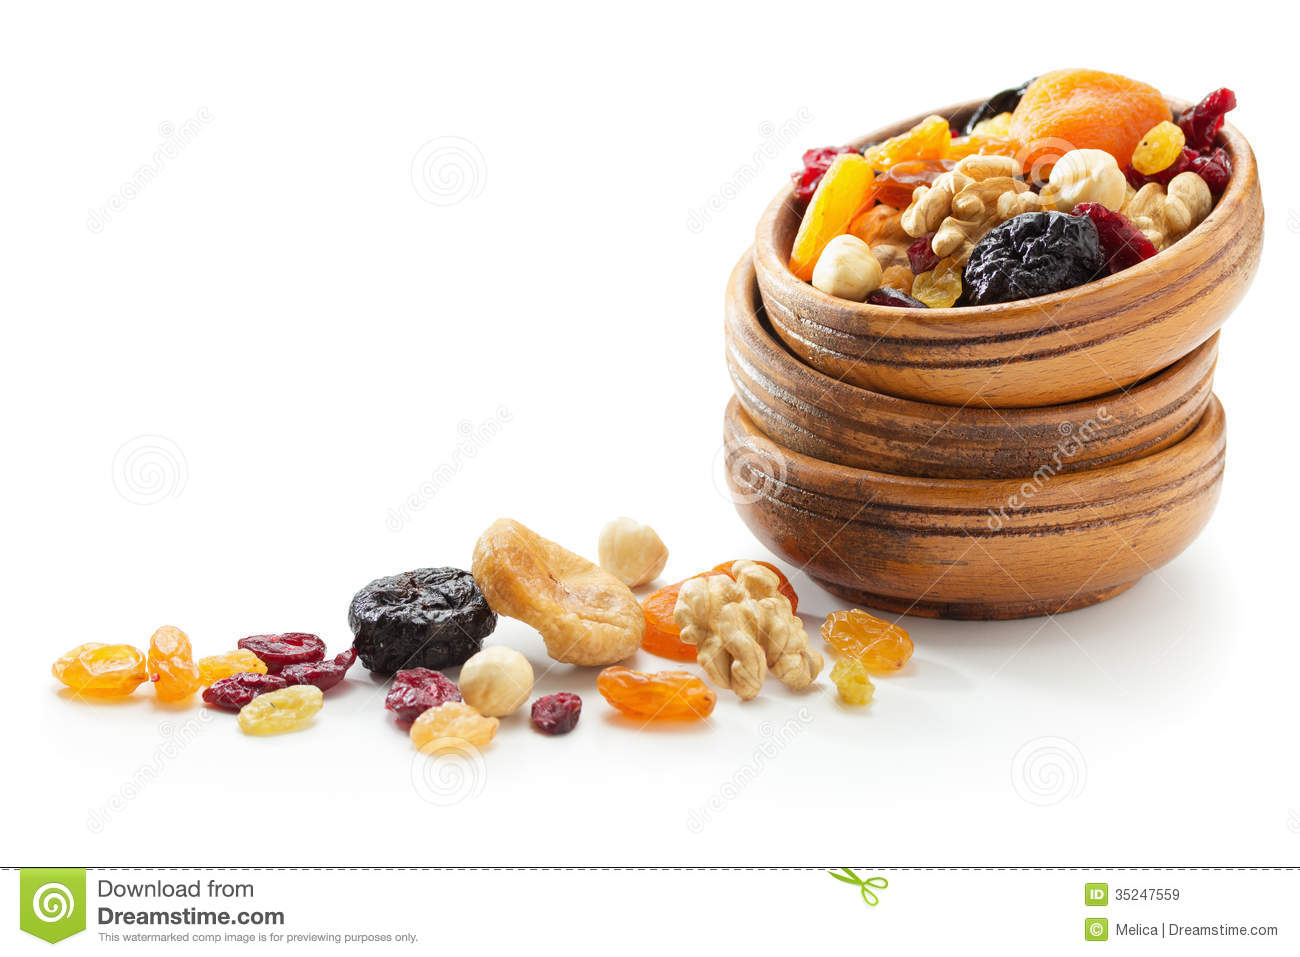 chocolate covered fruit is dried fruit healthy for you